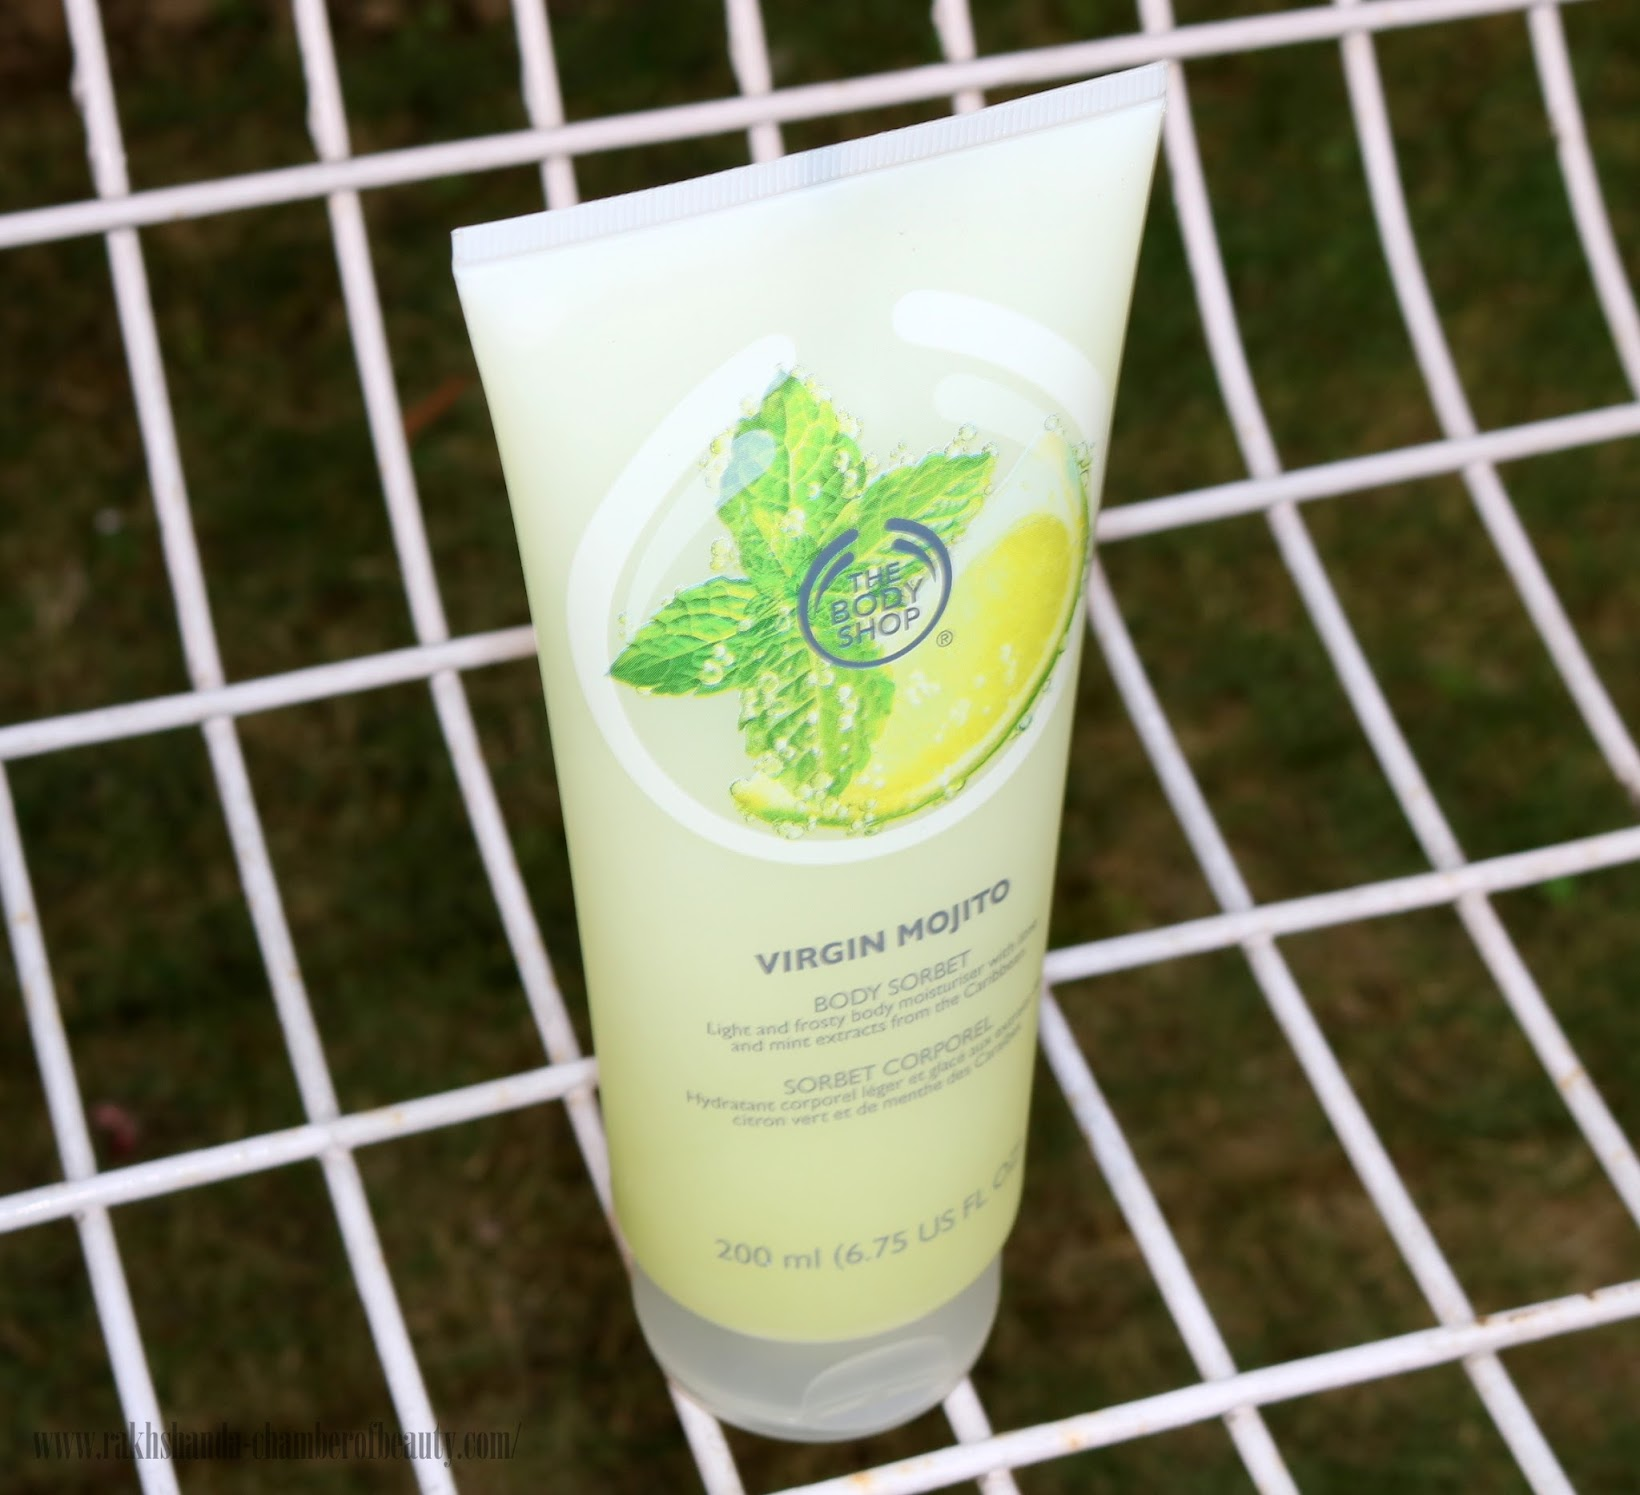 The Body Shop Virgin Mojito range in India, The Body Shop Virgin Mojito Body Sorbet-review, price in India, Indian beauty blogger, Chamber of Beauty